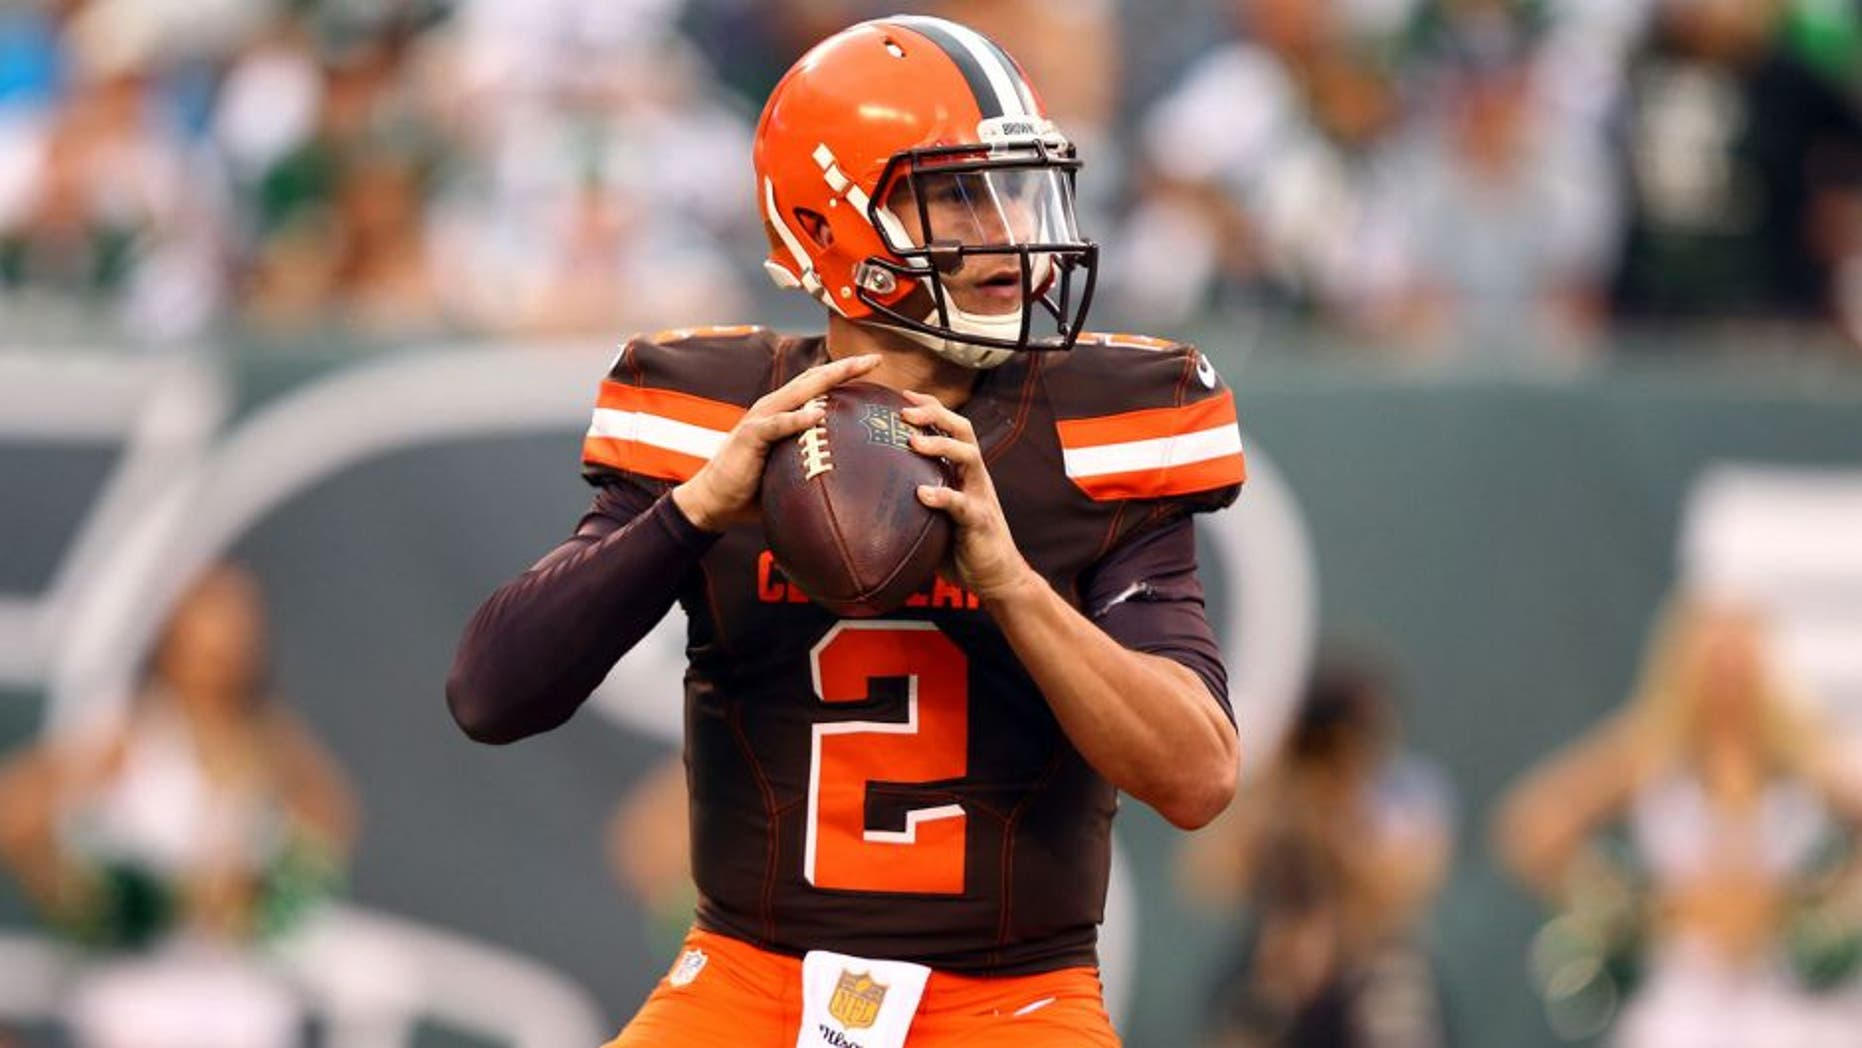 Sep 13, 2015; East Rutherford, NJ, USA; Cleveland Browns quarterback Johnny Manziel (2) looks to throw against the New York Jets during the second half at MetLife Stadium. Mandatory Credit: Danny Wild-USA TODAY Sports